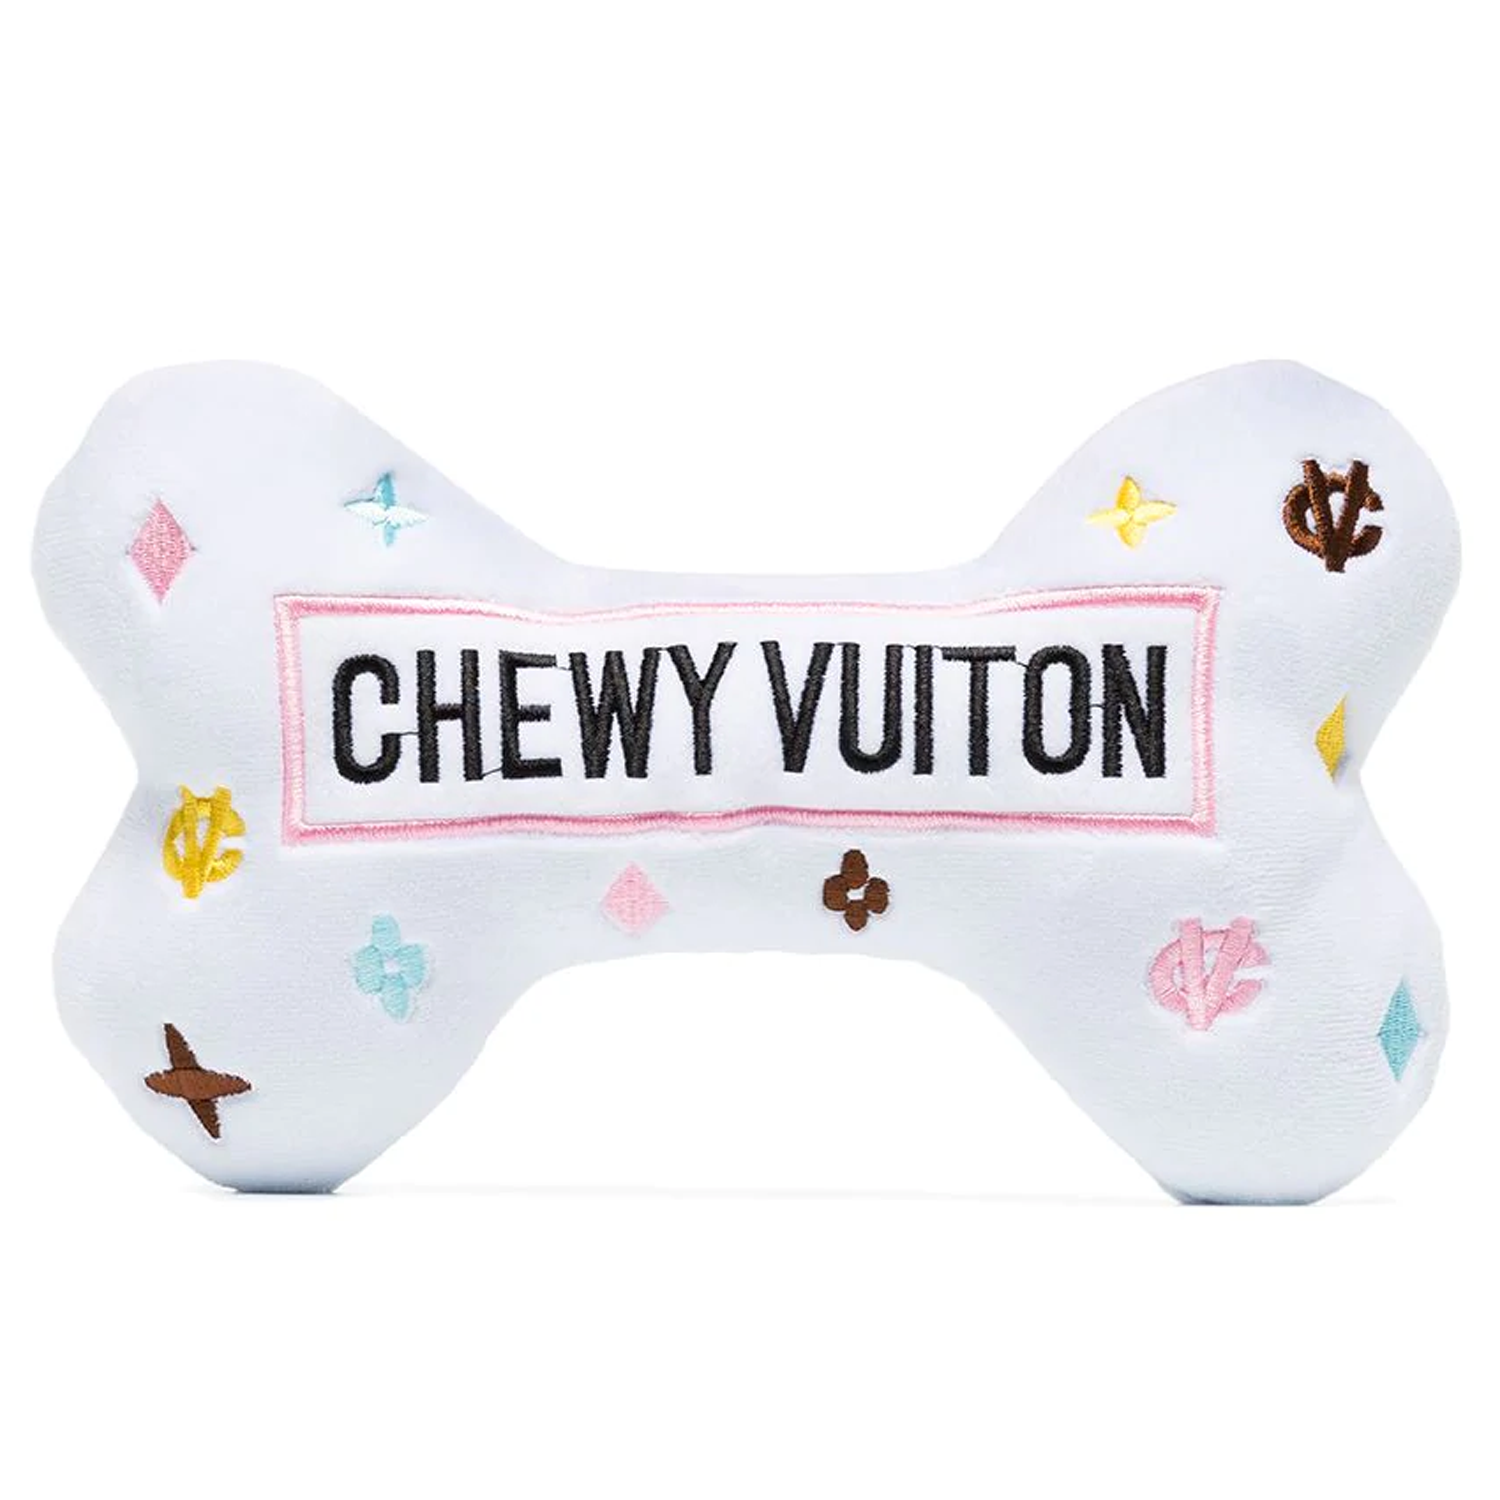 Chewy Vuiton Dog Bone: White